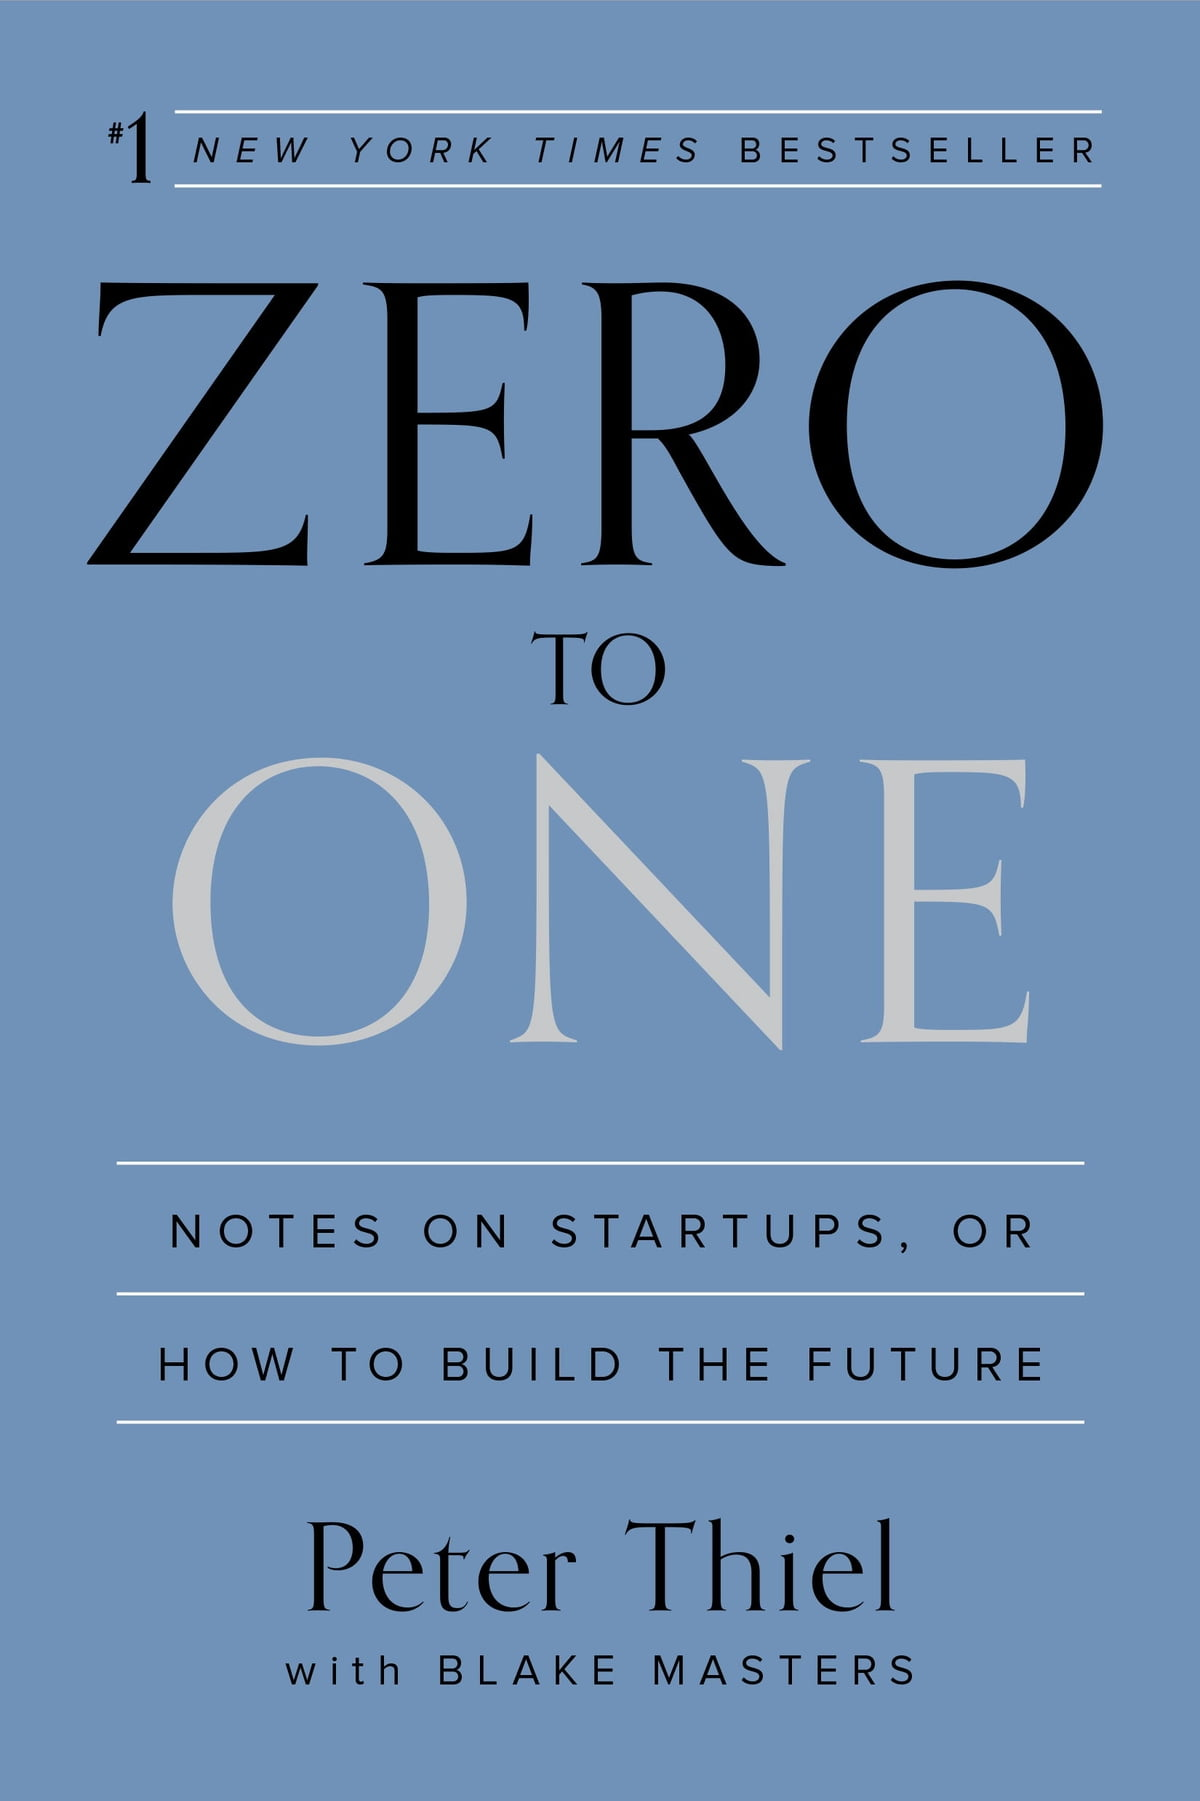 Zero To One  Notes On Startups, Or How To Build The Future Ebook By